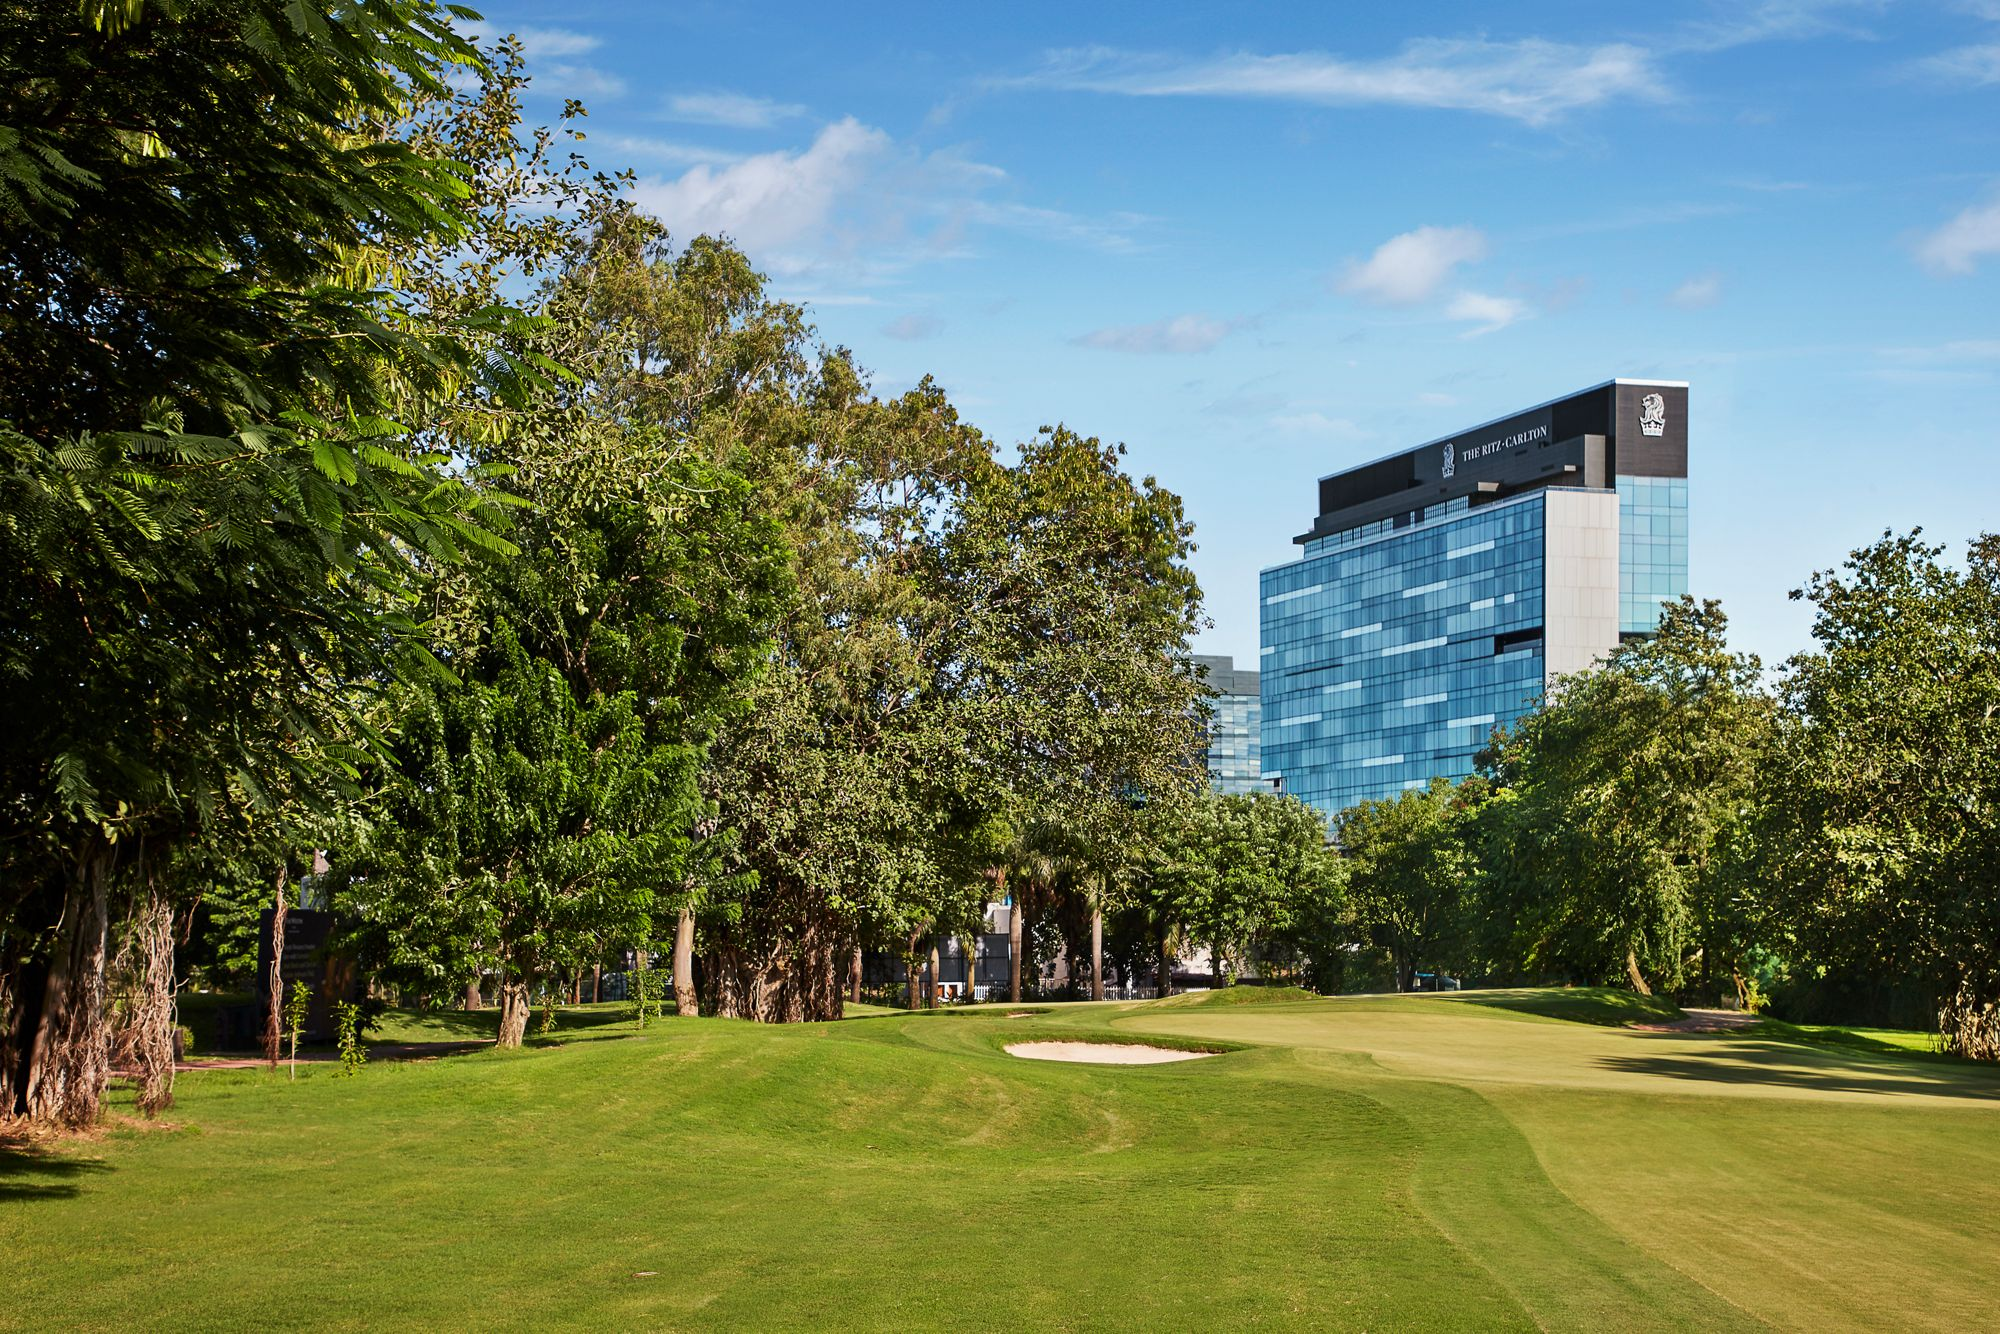 The Poona Club Golf Course